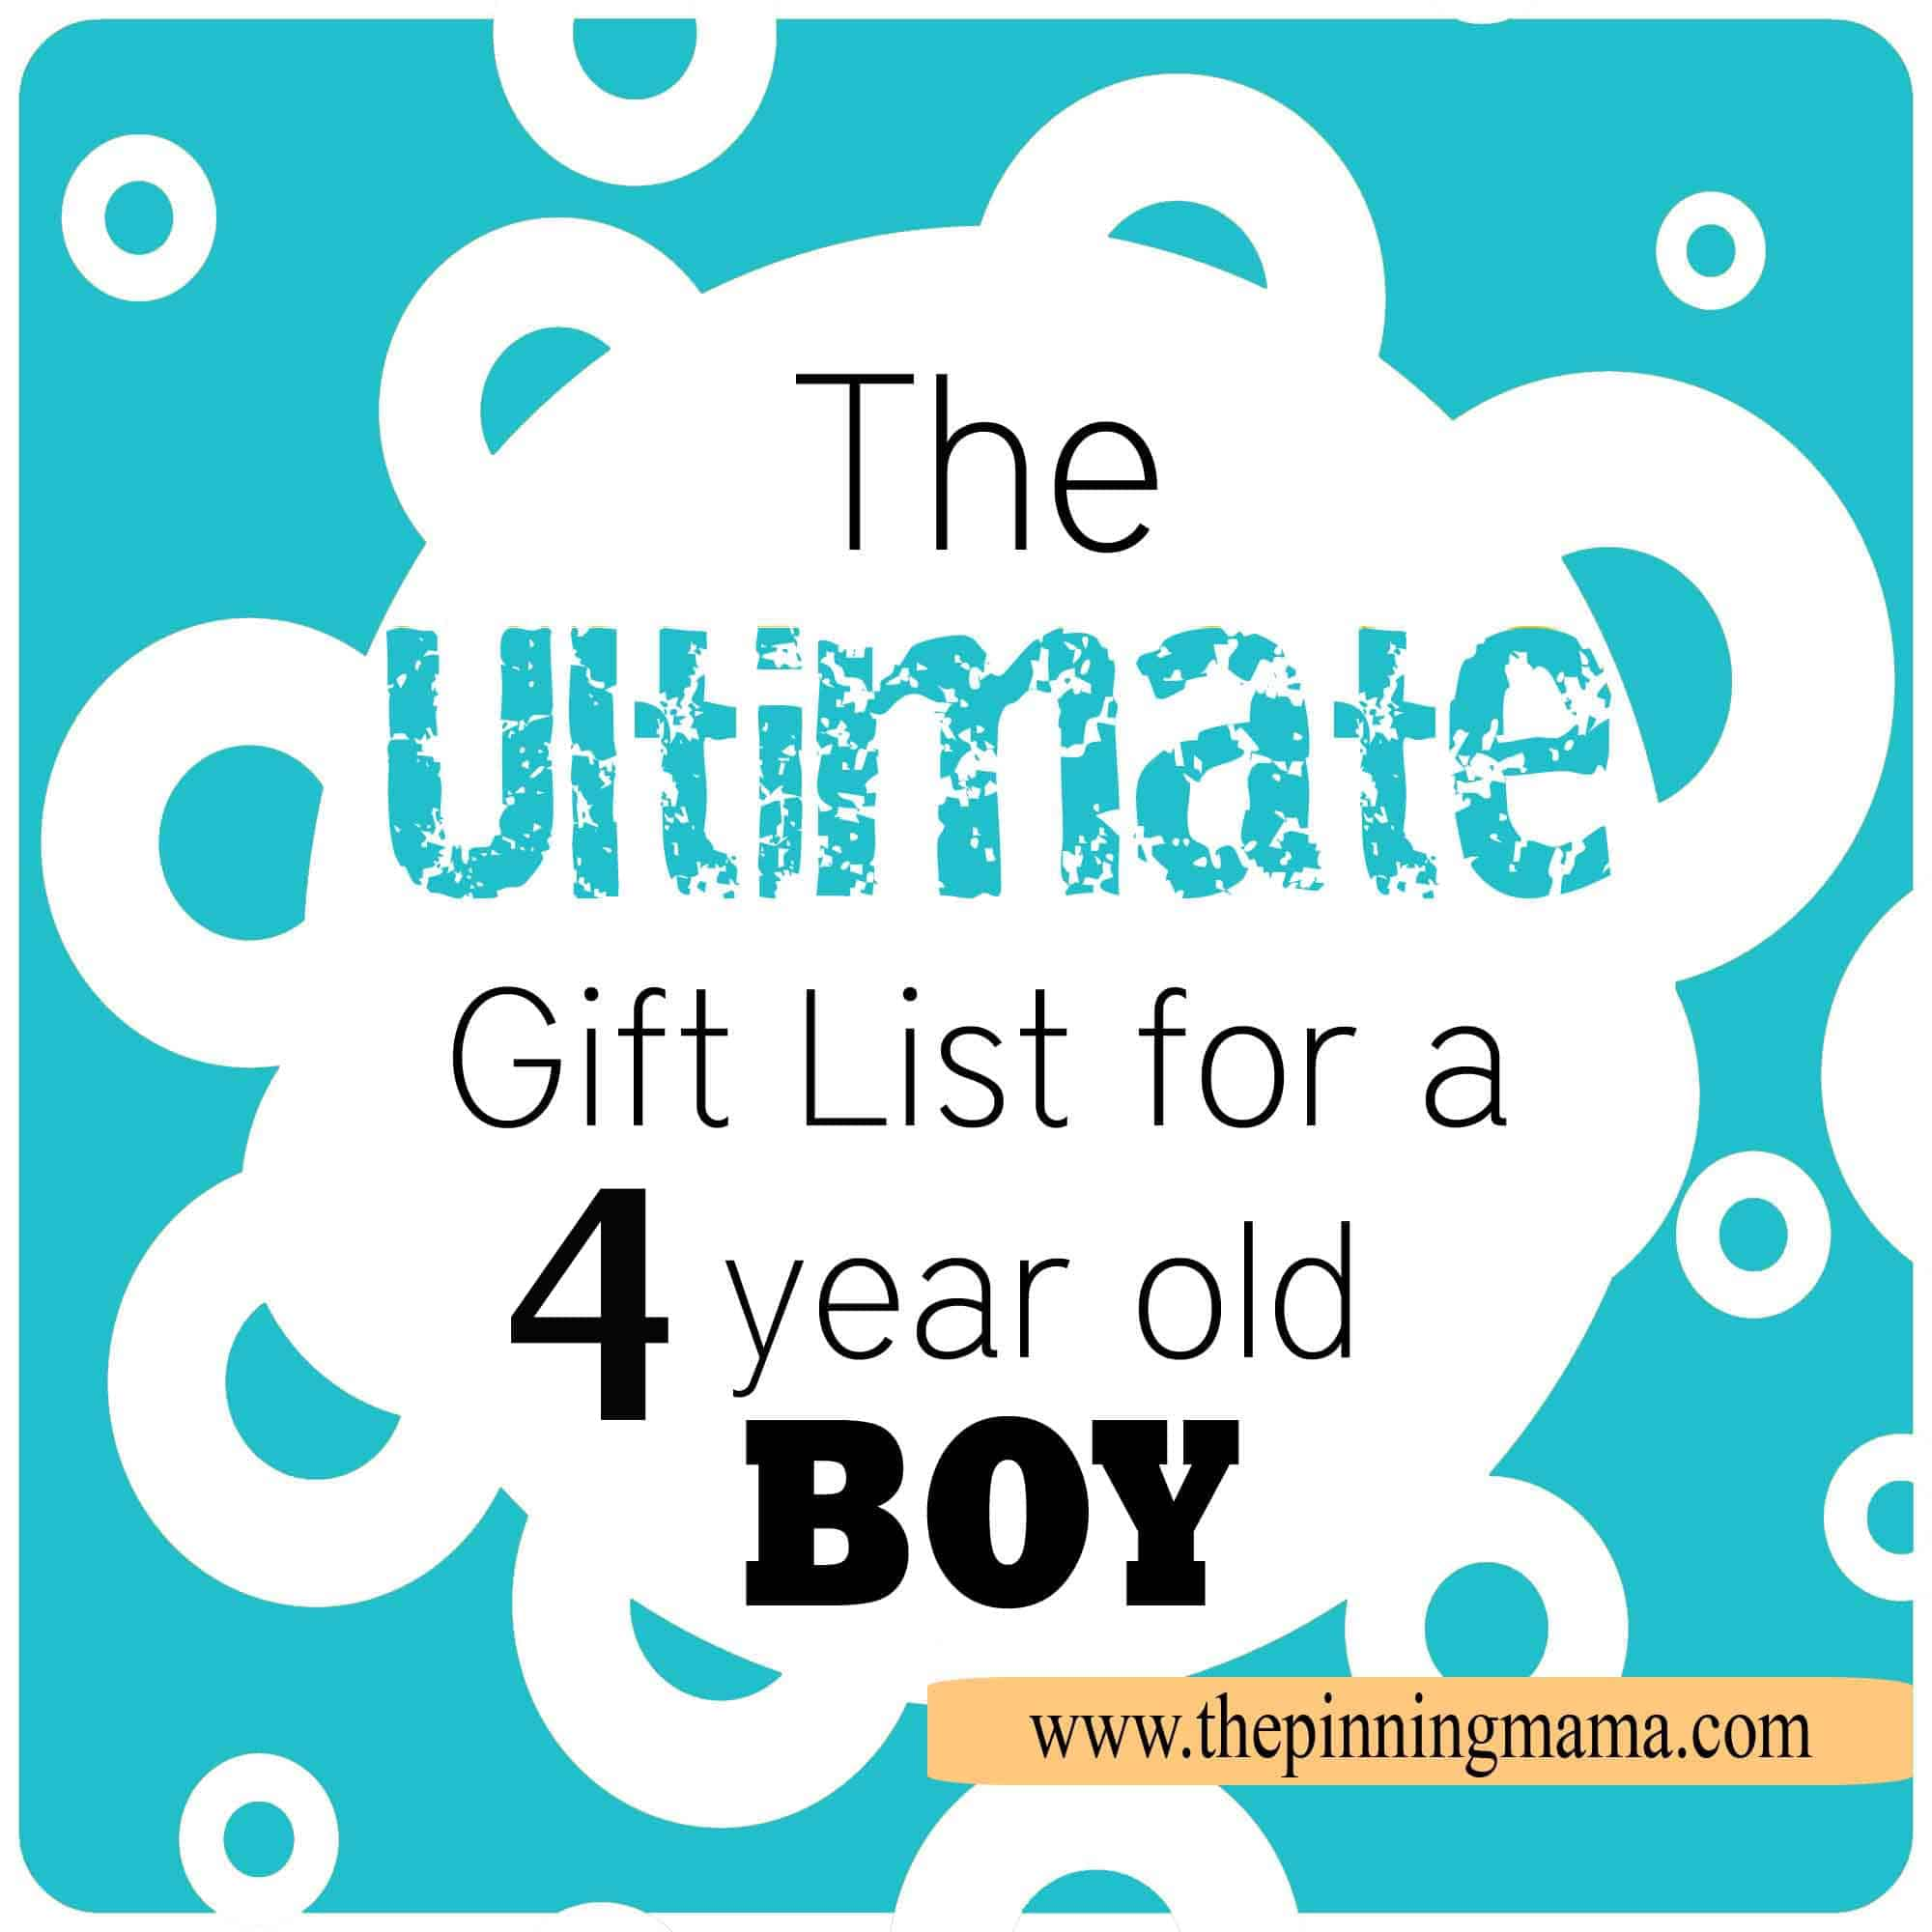 Christmas Gift Ideas 15 Year Old Boy Part 30 Christmas